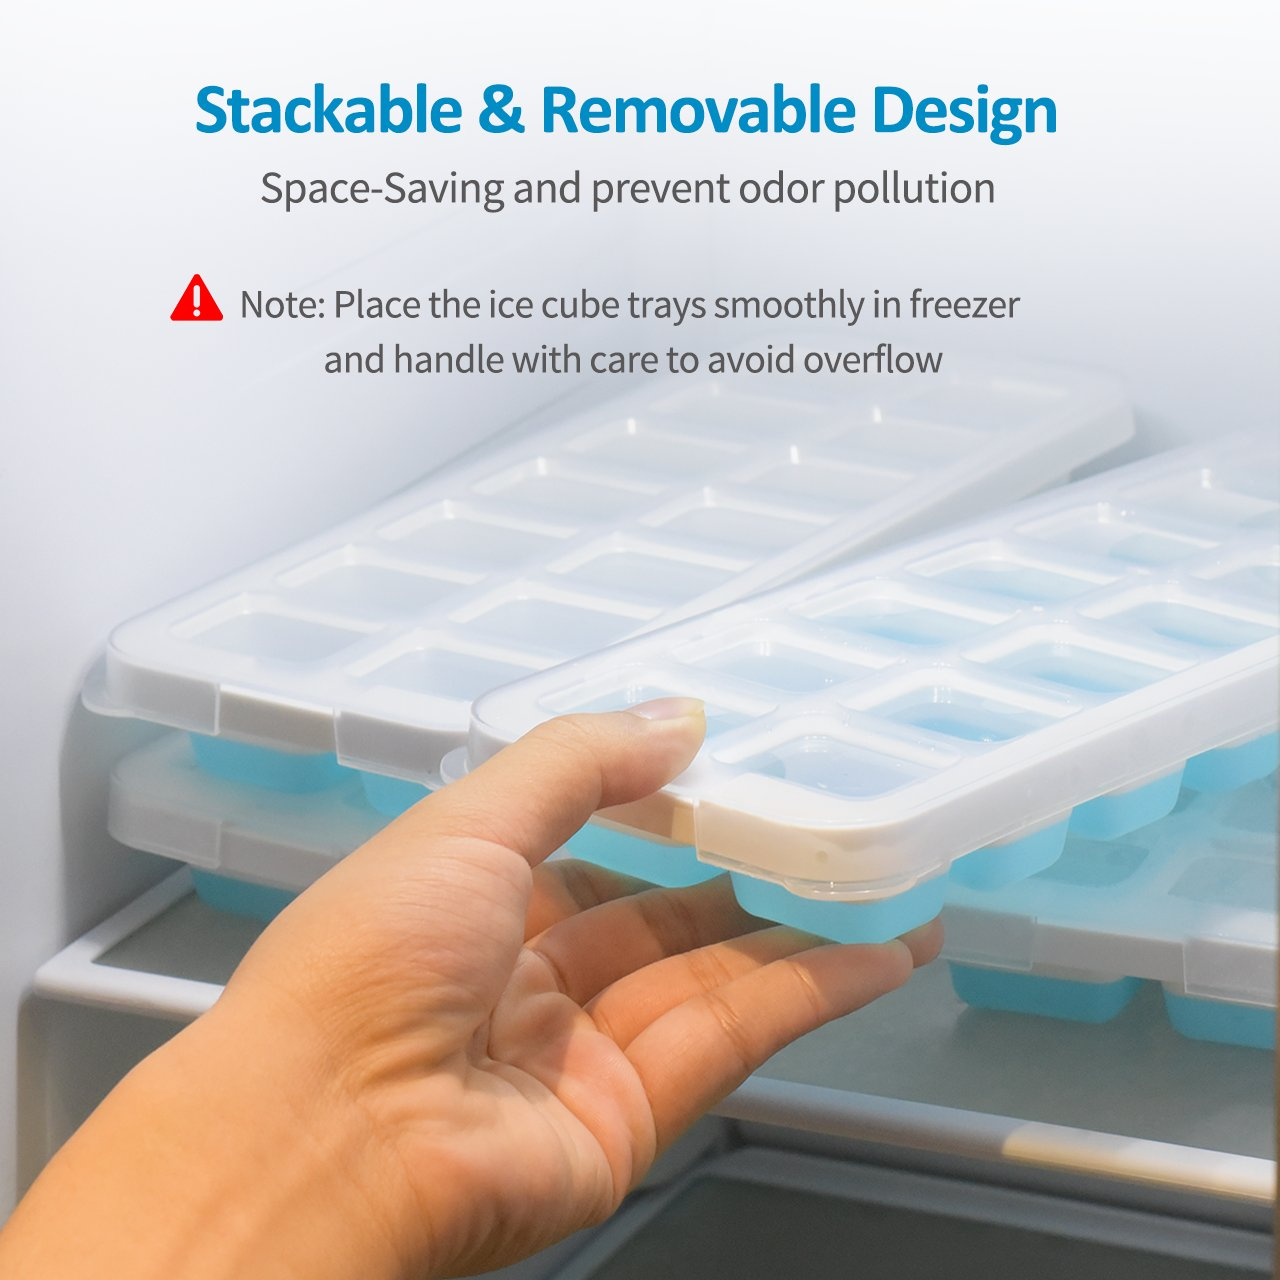 OMorc Ice Cube Trays 4 Pack [Upgraded Version], Easy-Release Silicone and Flexible 14-Ice Trays with Unique Removable Lid, Make Larger Ice Cubes, BPA Free, Stackable Durable and Dishwasher Safe by OMORC (Image #6)